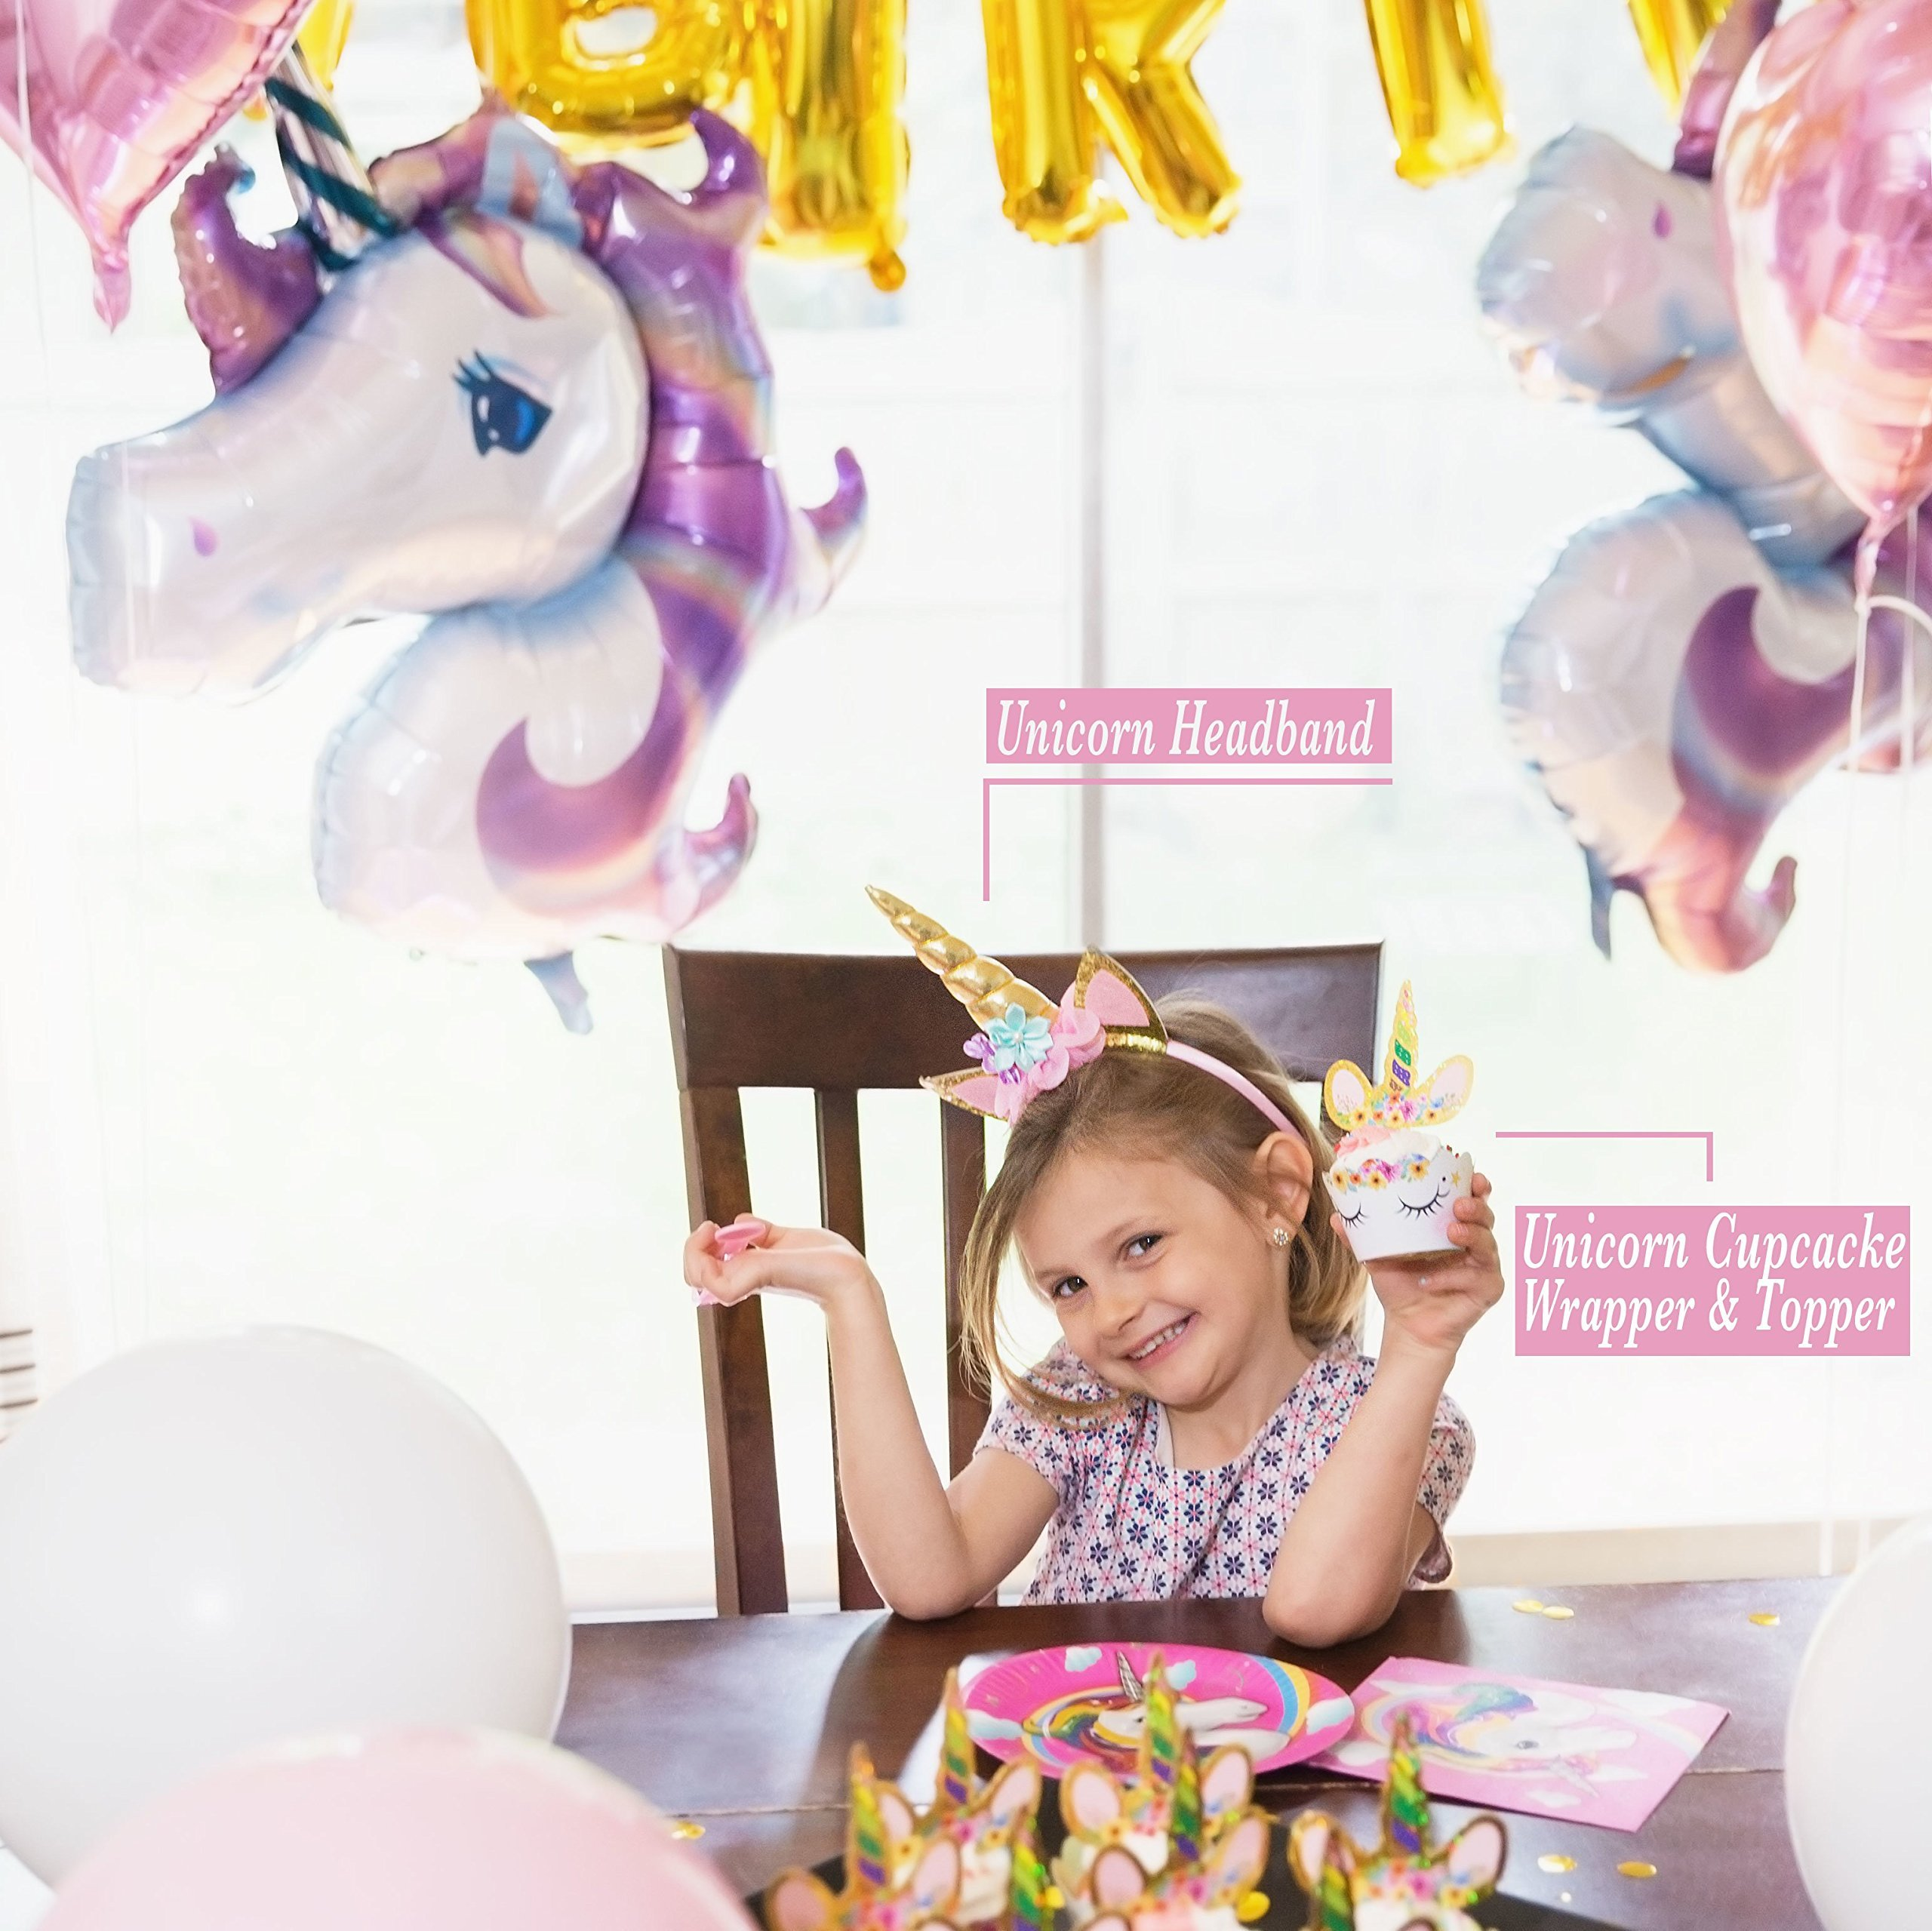 180+ PCS Complete Unicorn Party Supplies & Decorations - Glittery Unicorn Headband | Disposable Tableware Set | 30 Magical Balloons | 24 Pc Unicorn Cupcake Wrappers & Toppers | Party Favors by FETTI FETTI (Image #2)